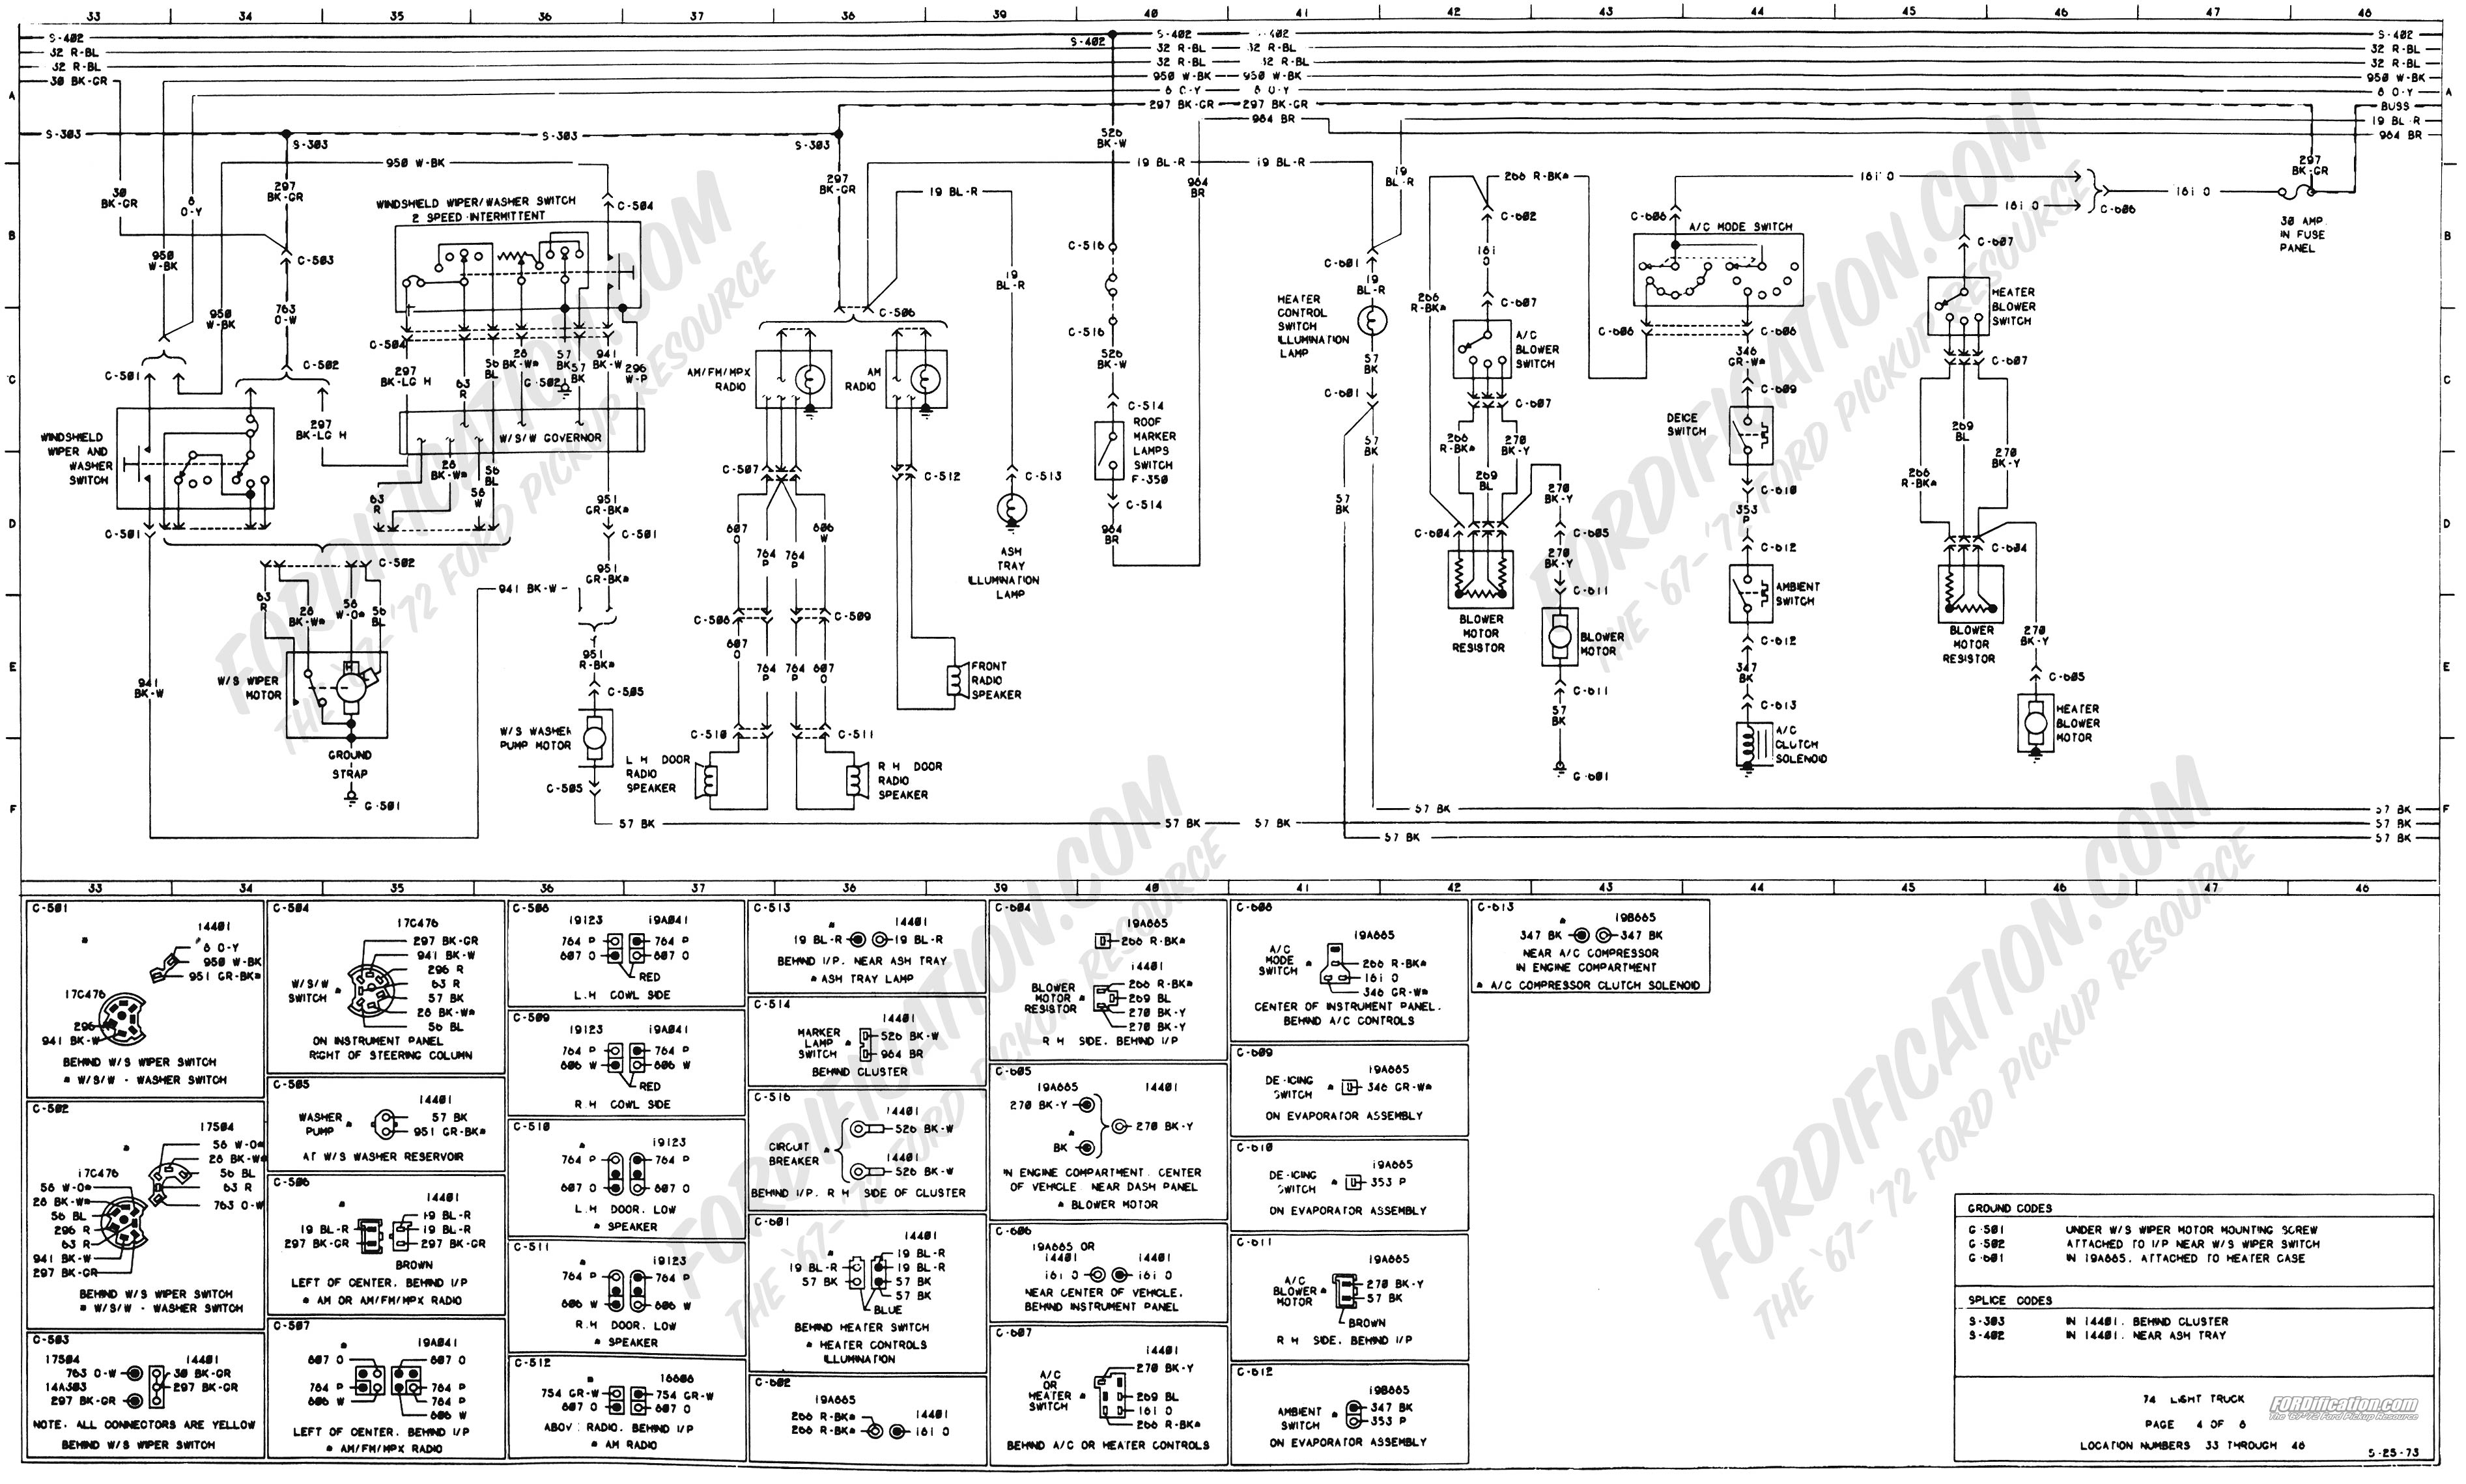 Ford Ranger 2003 Ford Ranger Starts But Immediately Stops additionally 2001 Ford Windstar Fuel Pump Fuse moreover 98 Toyota Ta a Maf Sensor Wiring Diagram besides 2002 Dodge Intrepid Cooling System Diagram further Another Led Taillight Question. on 2001 ford f150 radio wiring diagram